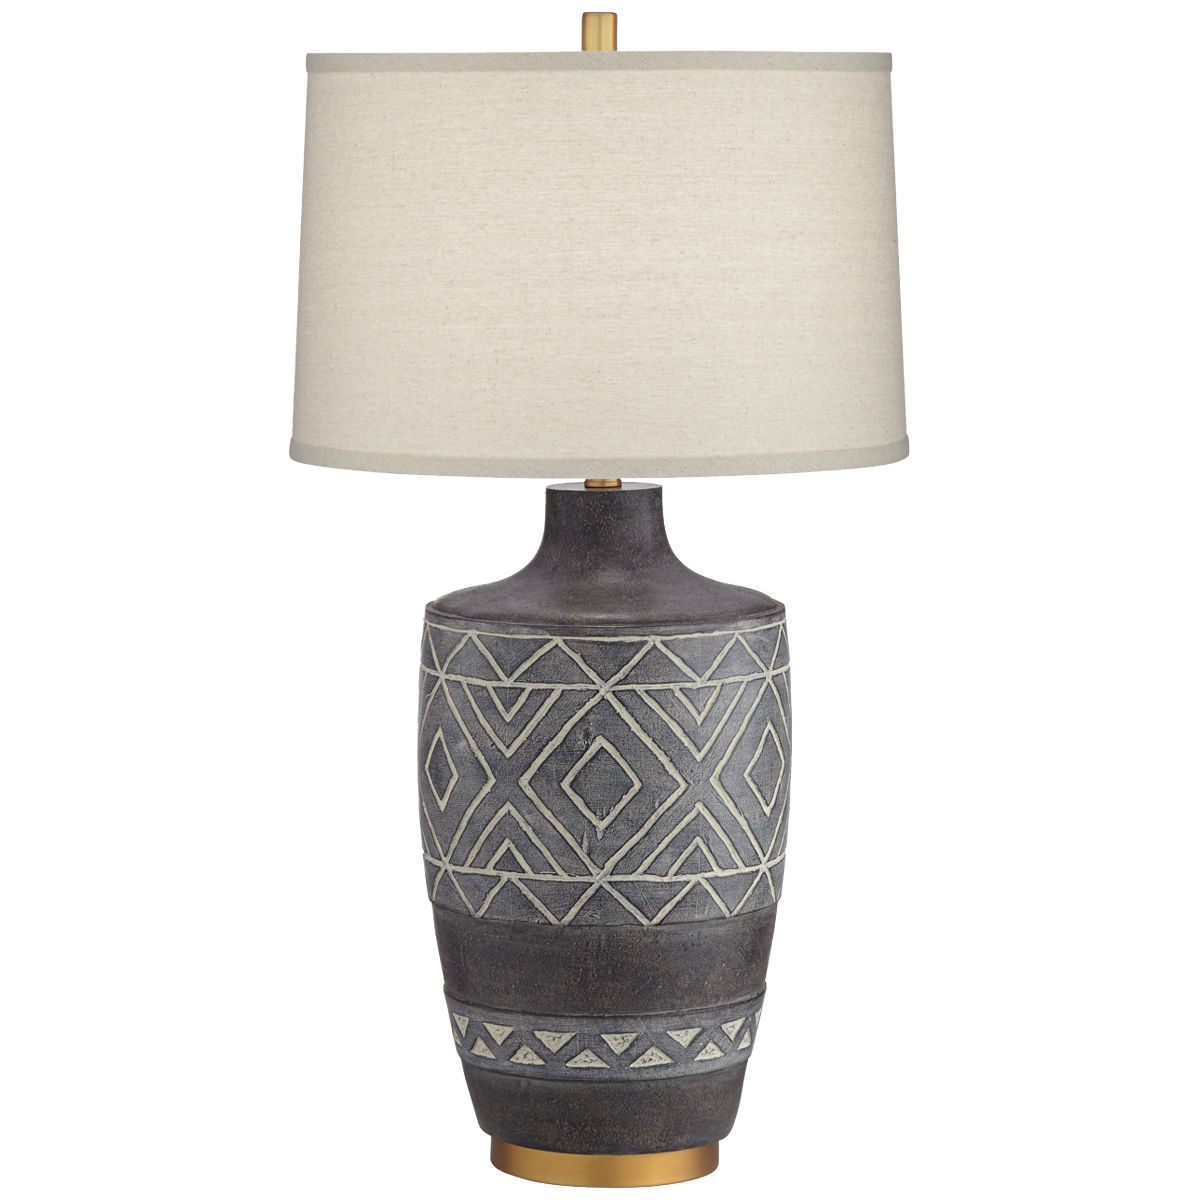 Spirit Canyon Table Lamp